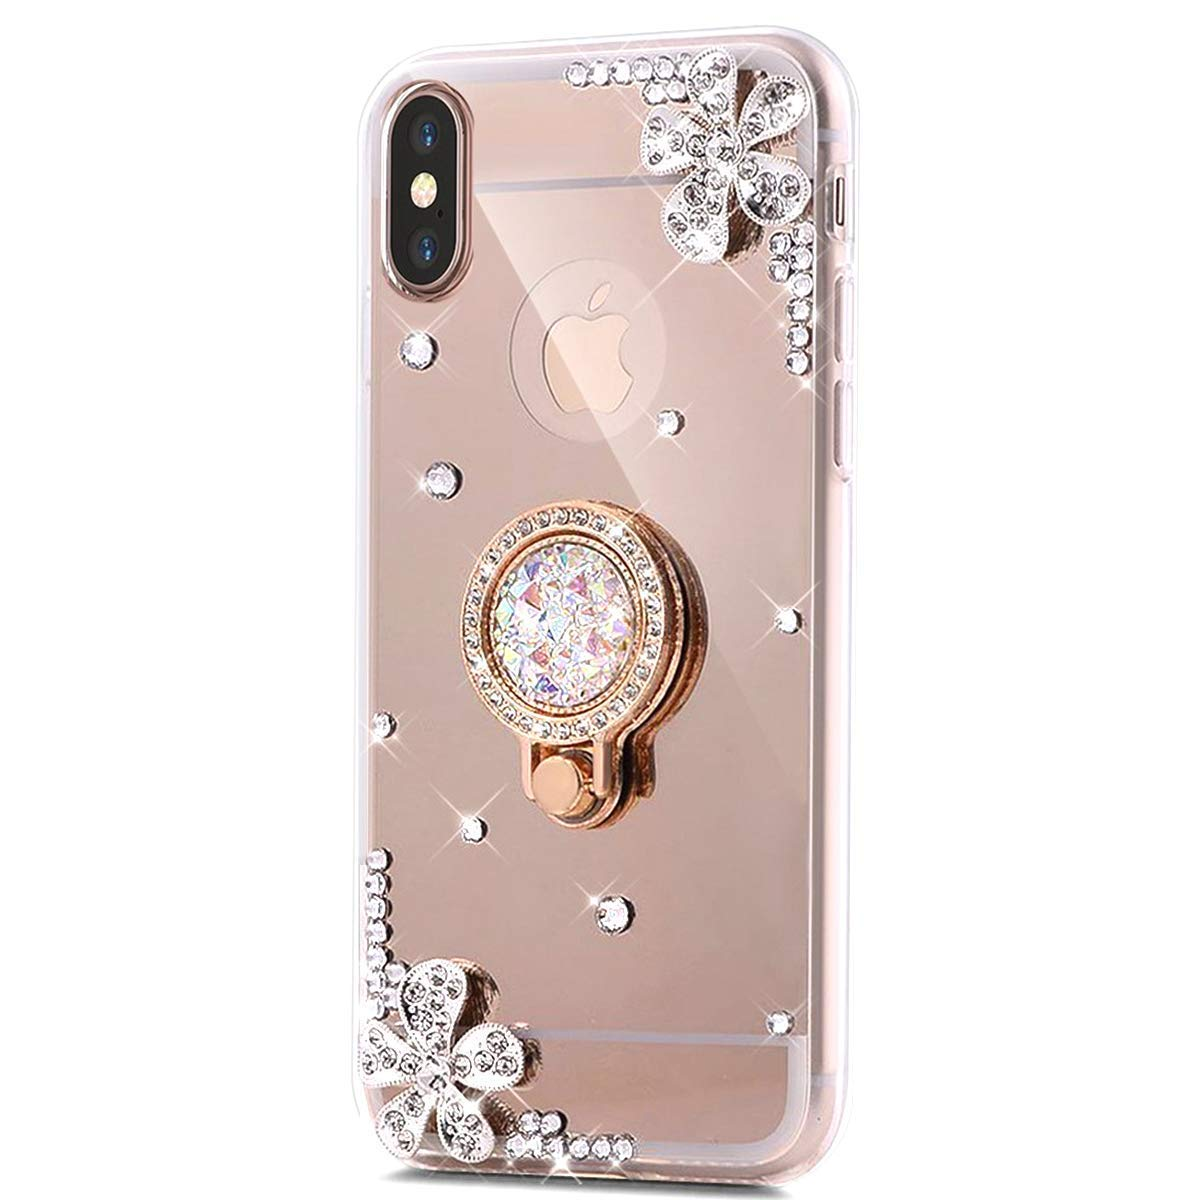 Surakey Case for iPhone XR, Slim Shiny Bling Glitter Diamond Luxury Sparkly Crystal Silicone Protective Cover Case Kickstand Rotating Ring Holder Rhinestone TPU Bumper for iPhone XR, Rose Gold SUR0002328